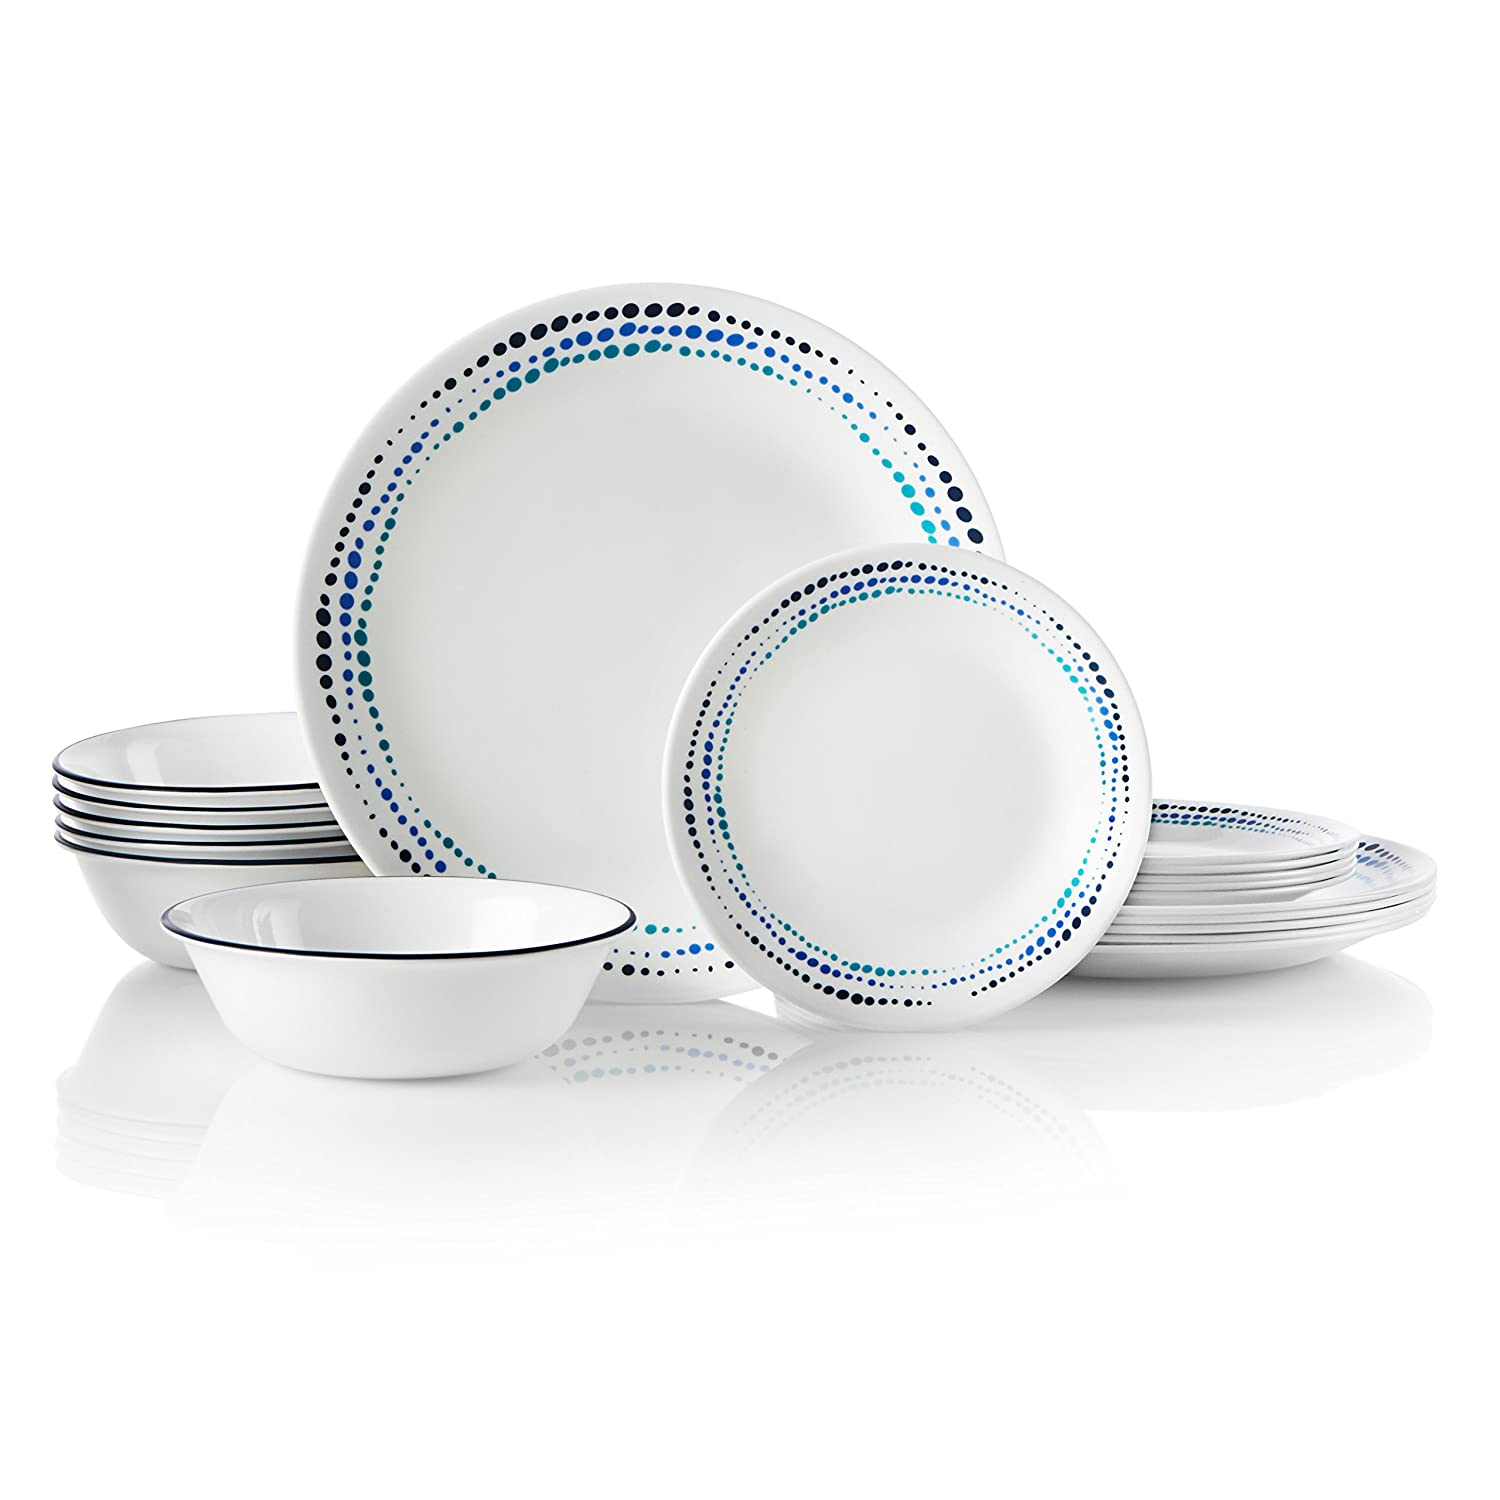 Corelle 1134331 Dinnerware Set 18-Piece Ocean Blues